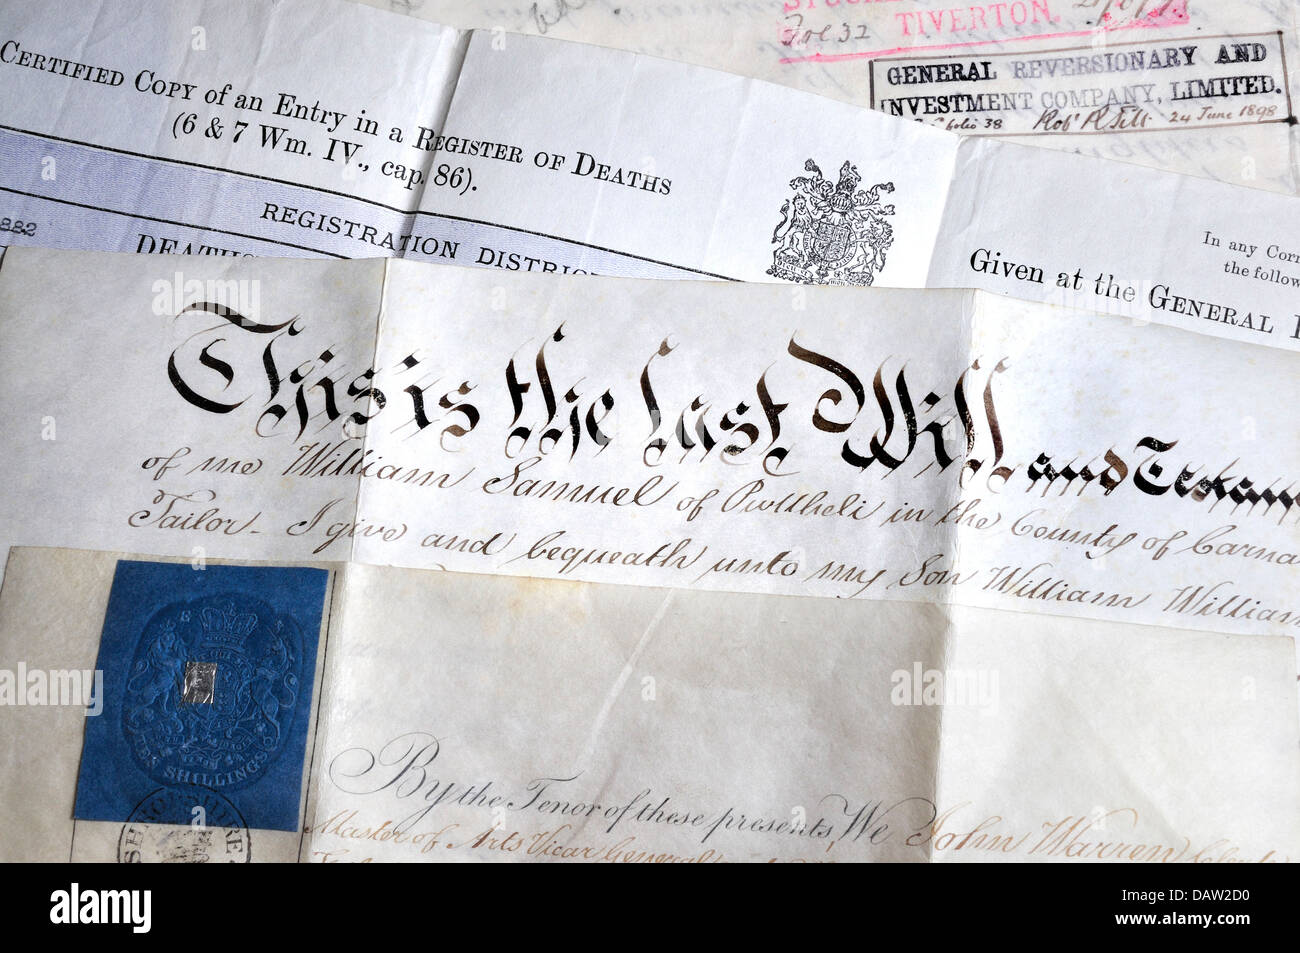 Genealogy documents - death certificate and hand-written will - Stock Image